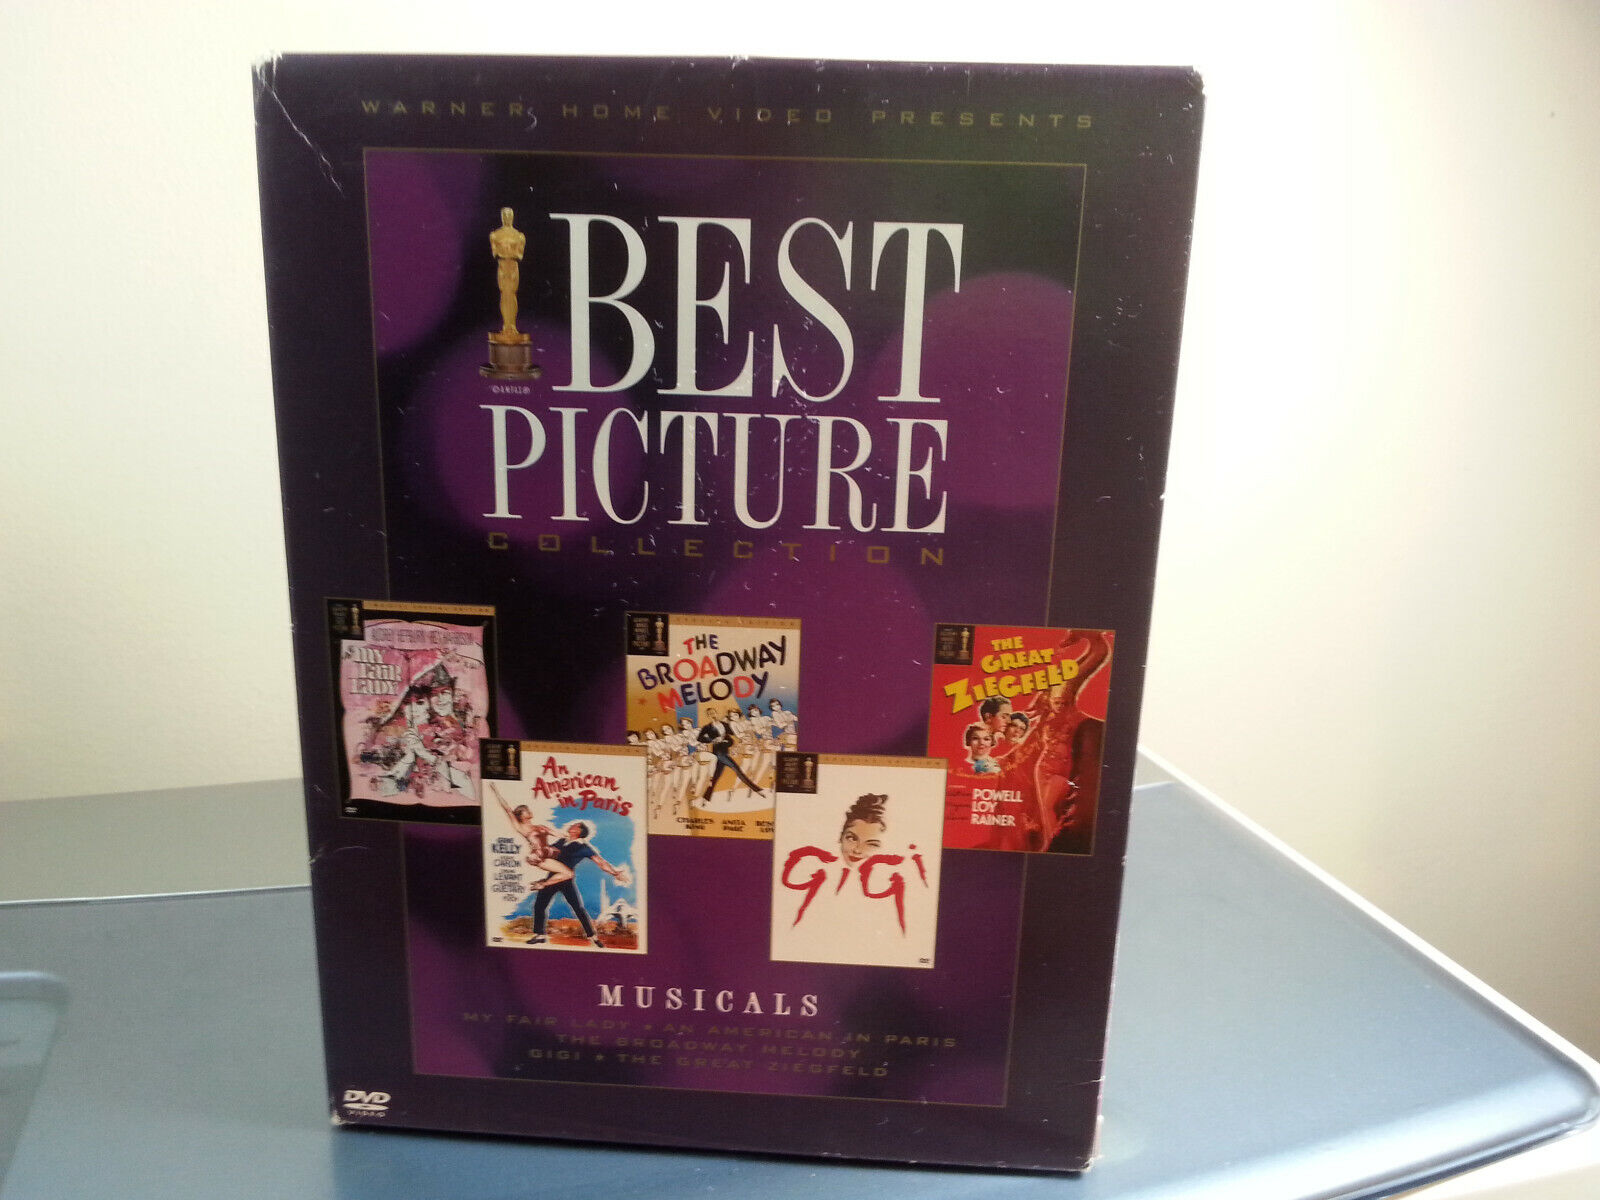 LikeNew 6 Disc DVD Box-Set Best Picture Collection - Musical 2005  - $18.99